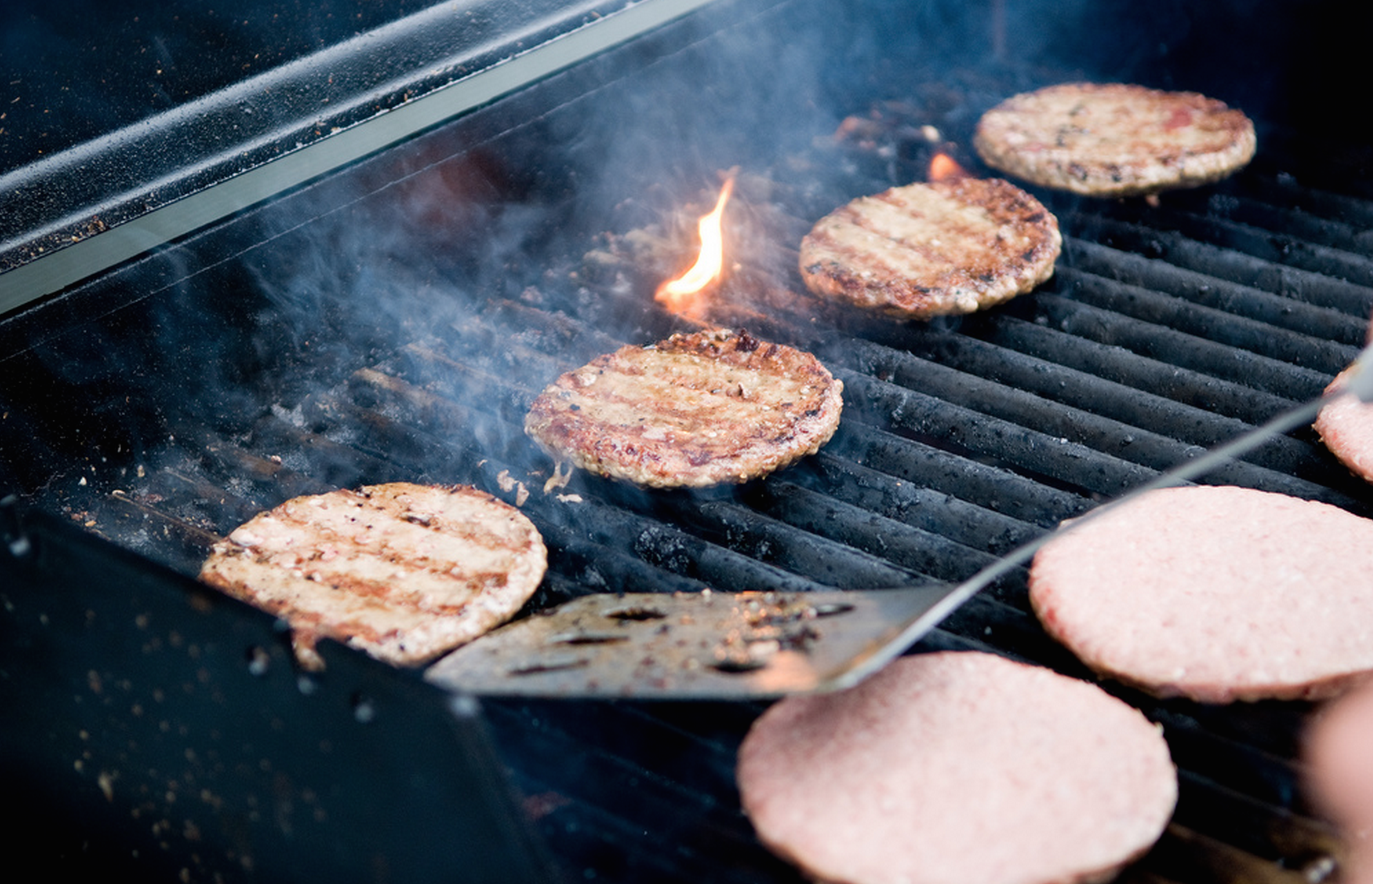 5 Cold-Weather Grilling Tips For Your Super Bowl Party